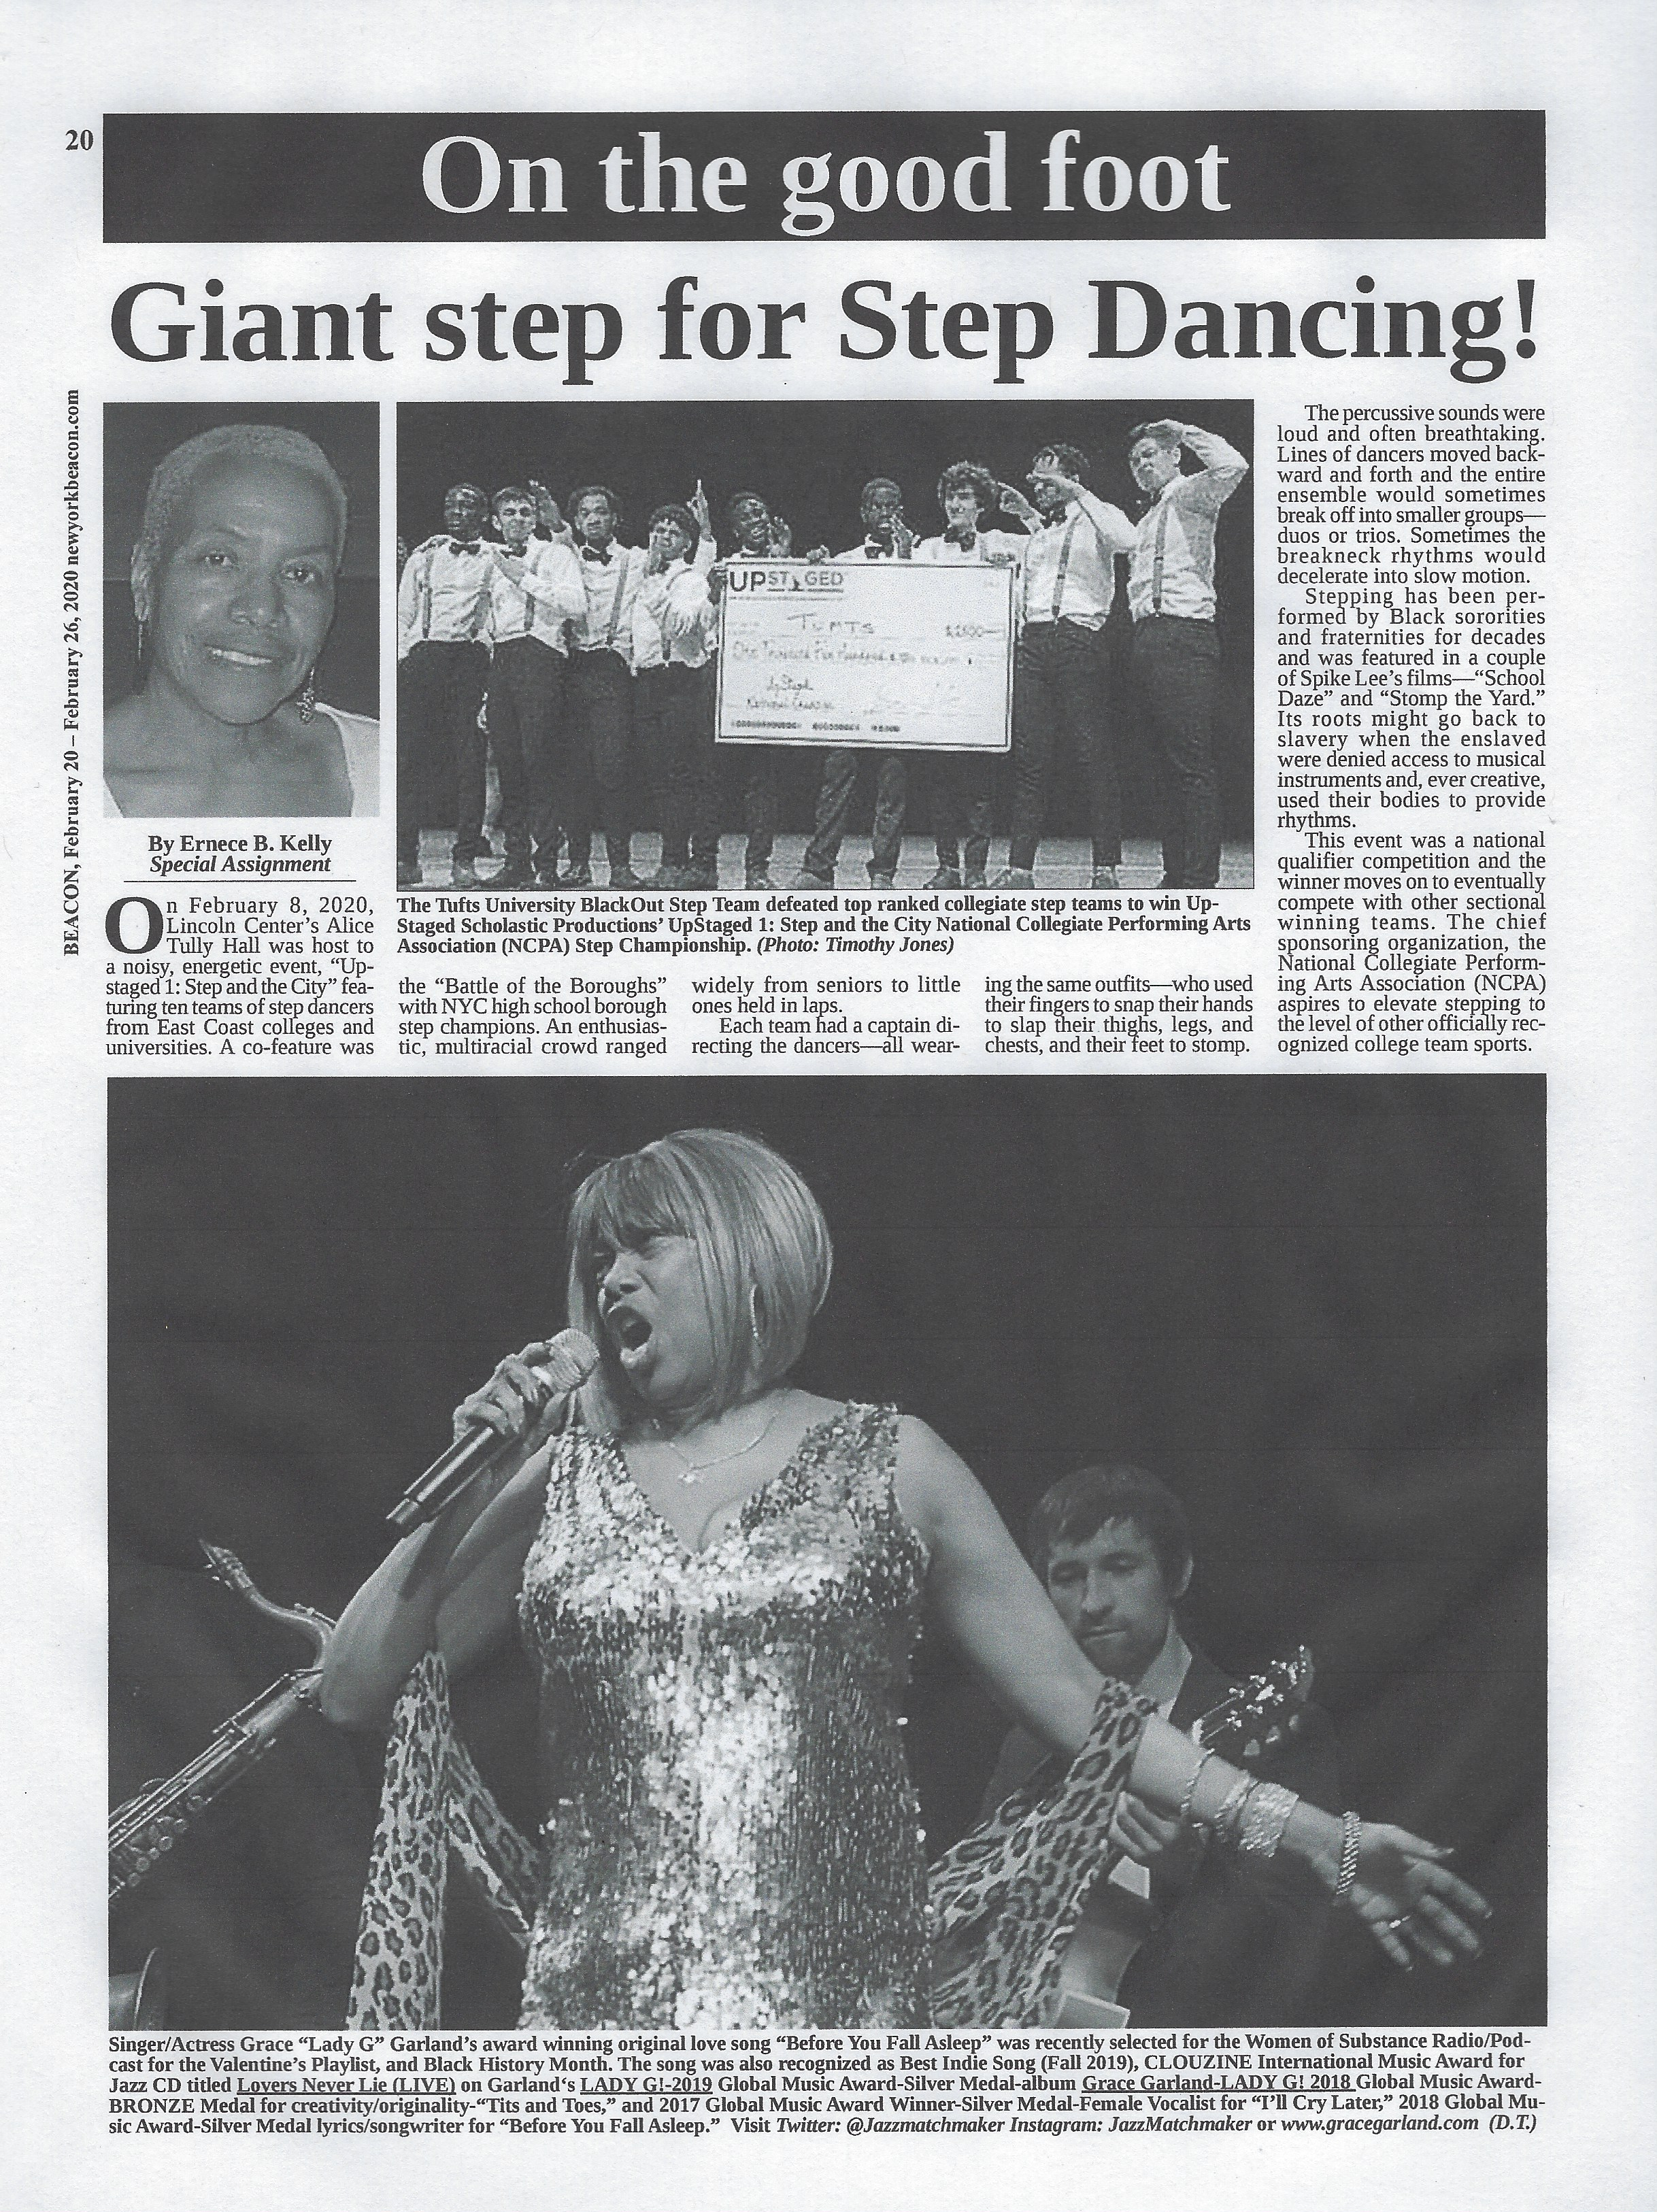 Grace Garland featured in New York Beacon Newspaper